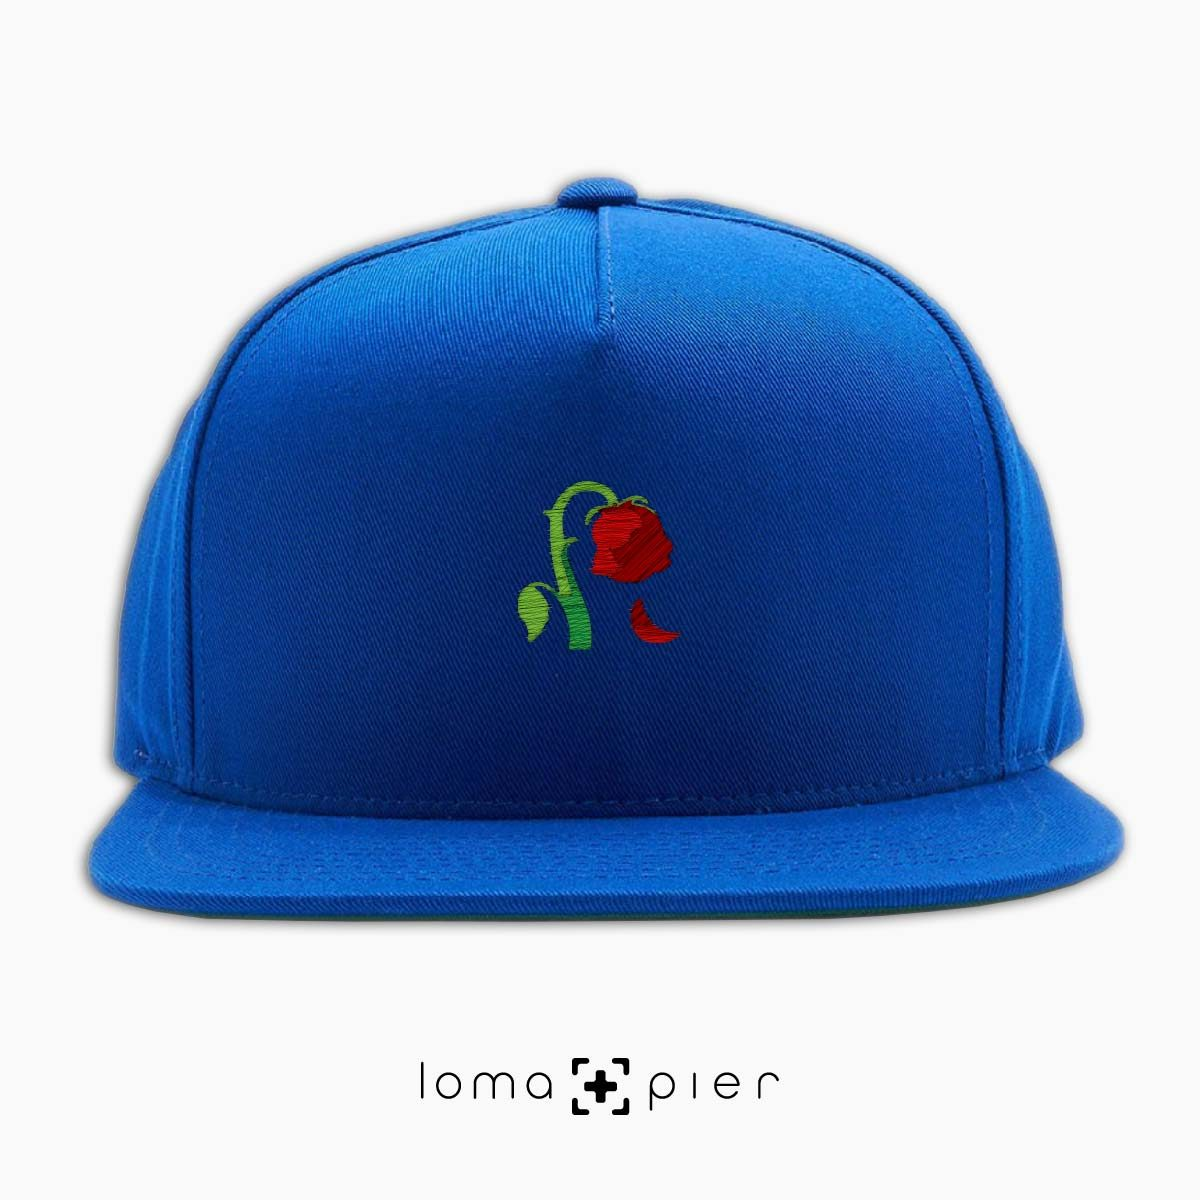 DYING ROSE EMOJI icon embroidered on a royal blue classic snapback hat by loma+pier hat store